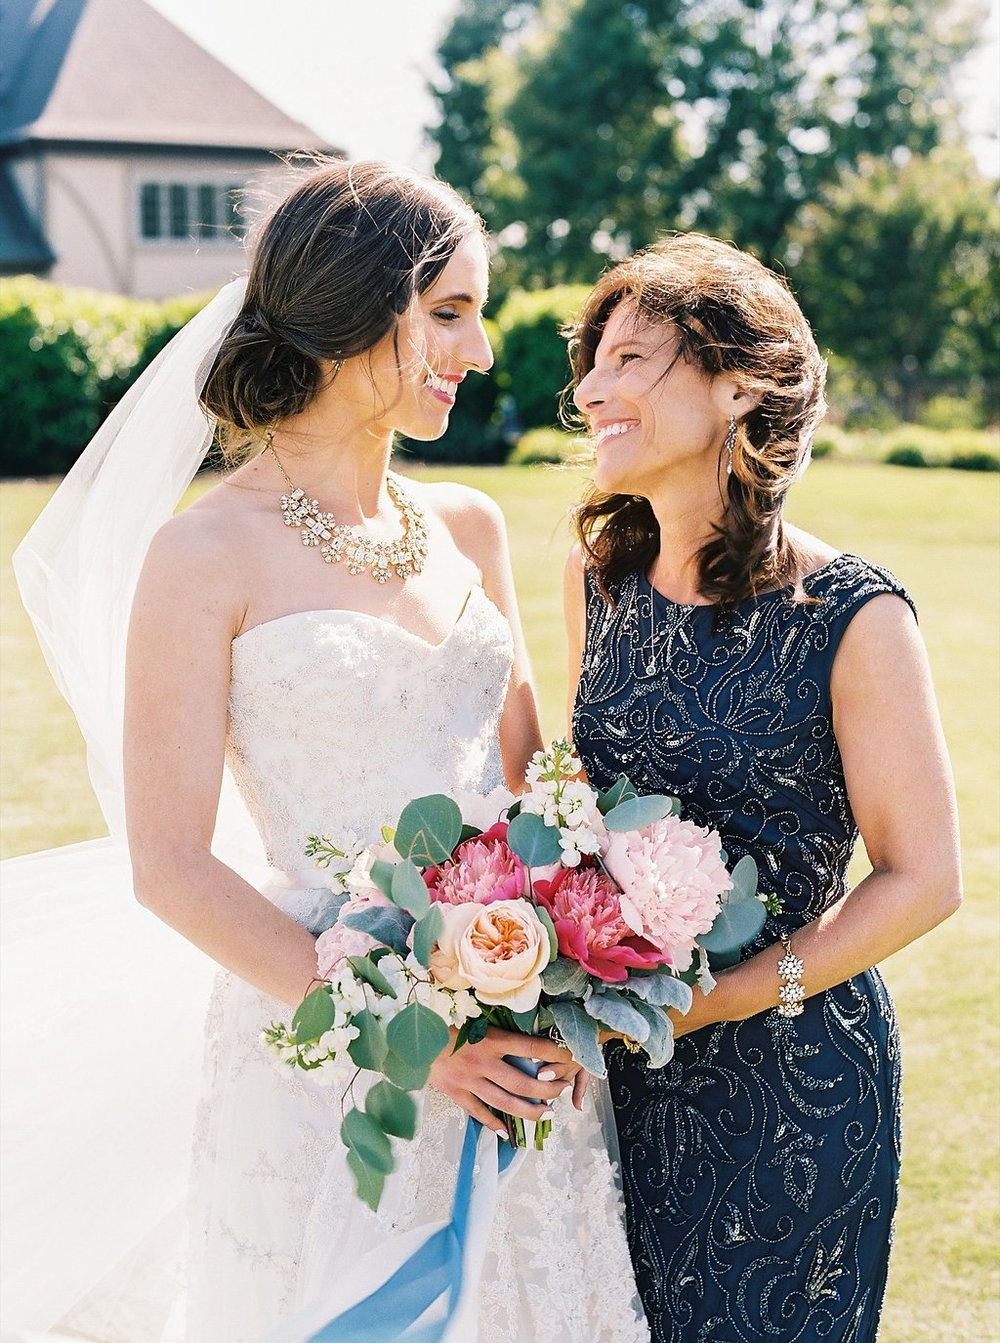 Sweet Bride and Mother of the Bride Moment | Blush and Navy Wedding with Fuchsia, French Blue and Gold Accents | Simply Jessica Marie's Southern Wedding | Photo by Perry Vaile Photography